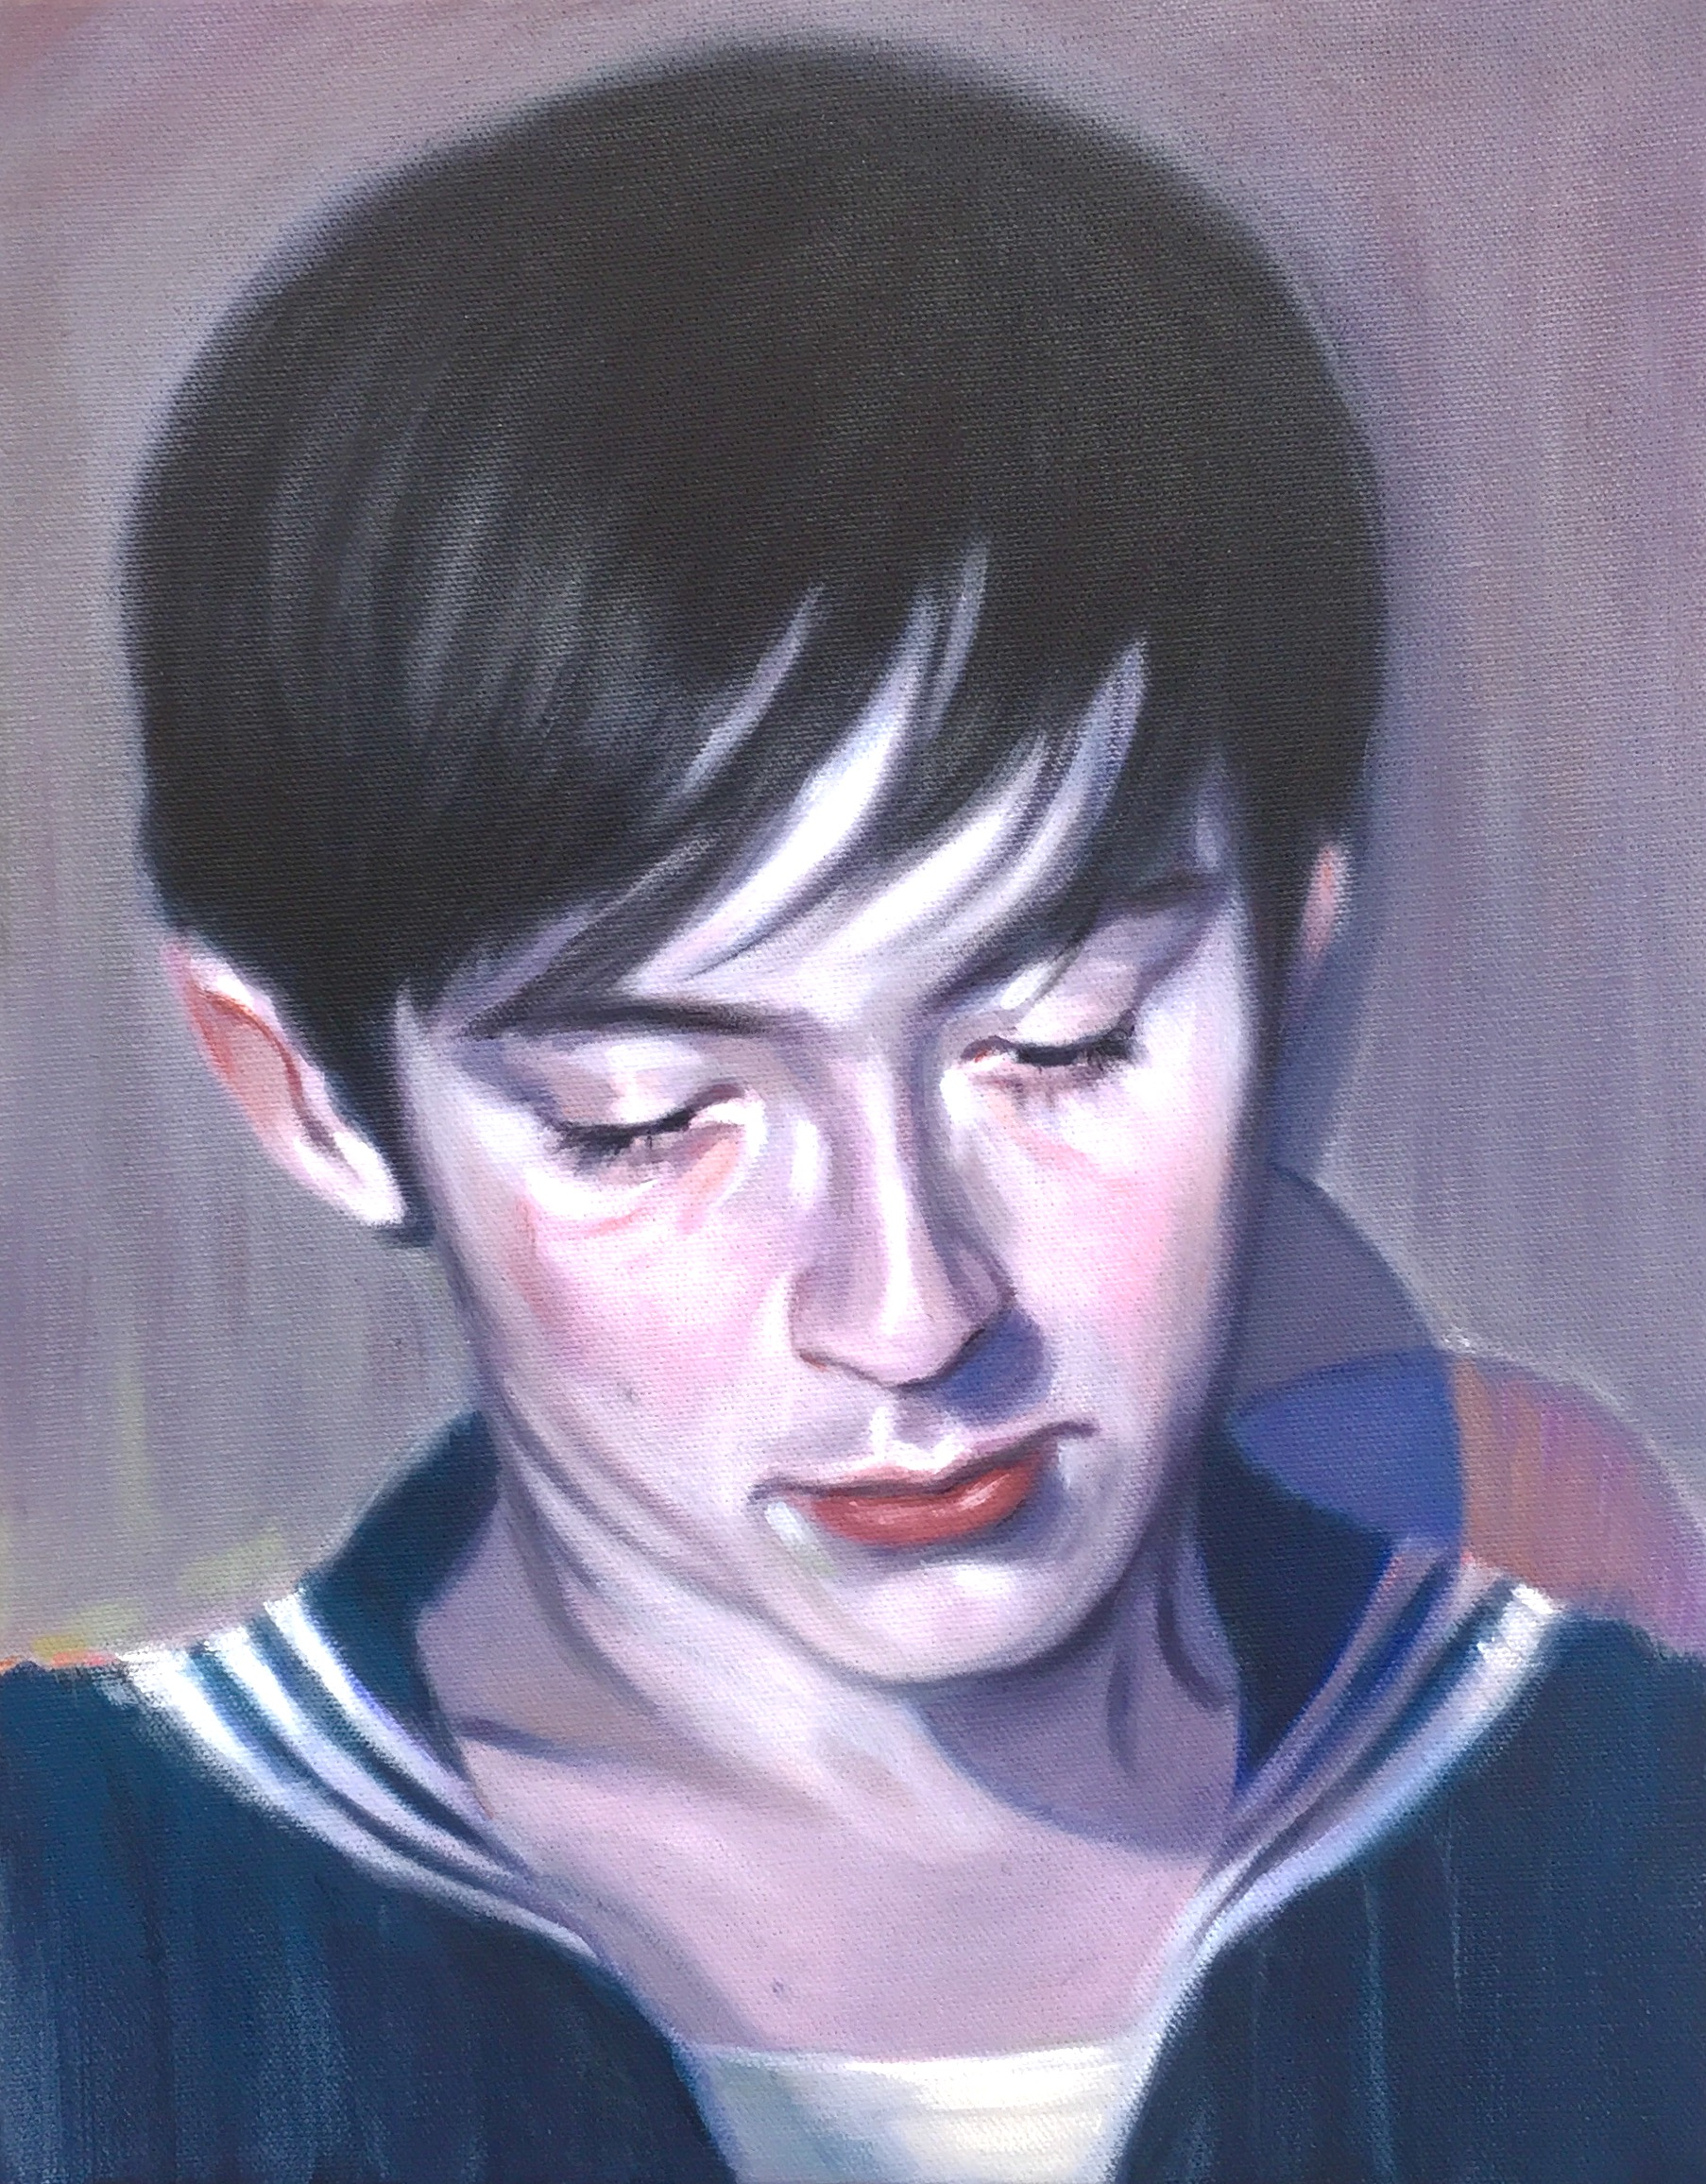 Kris Knight, Navy, 2017, oil on canvas, 14 x 11 inches